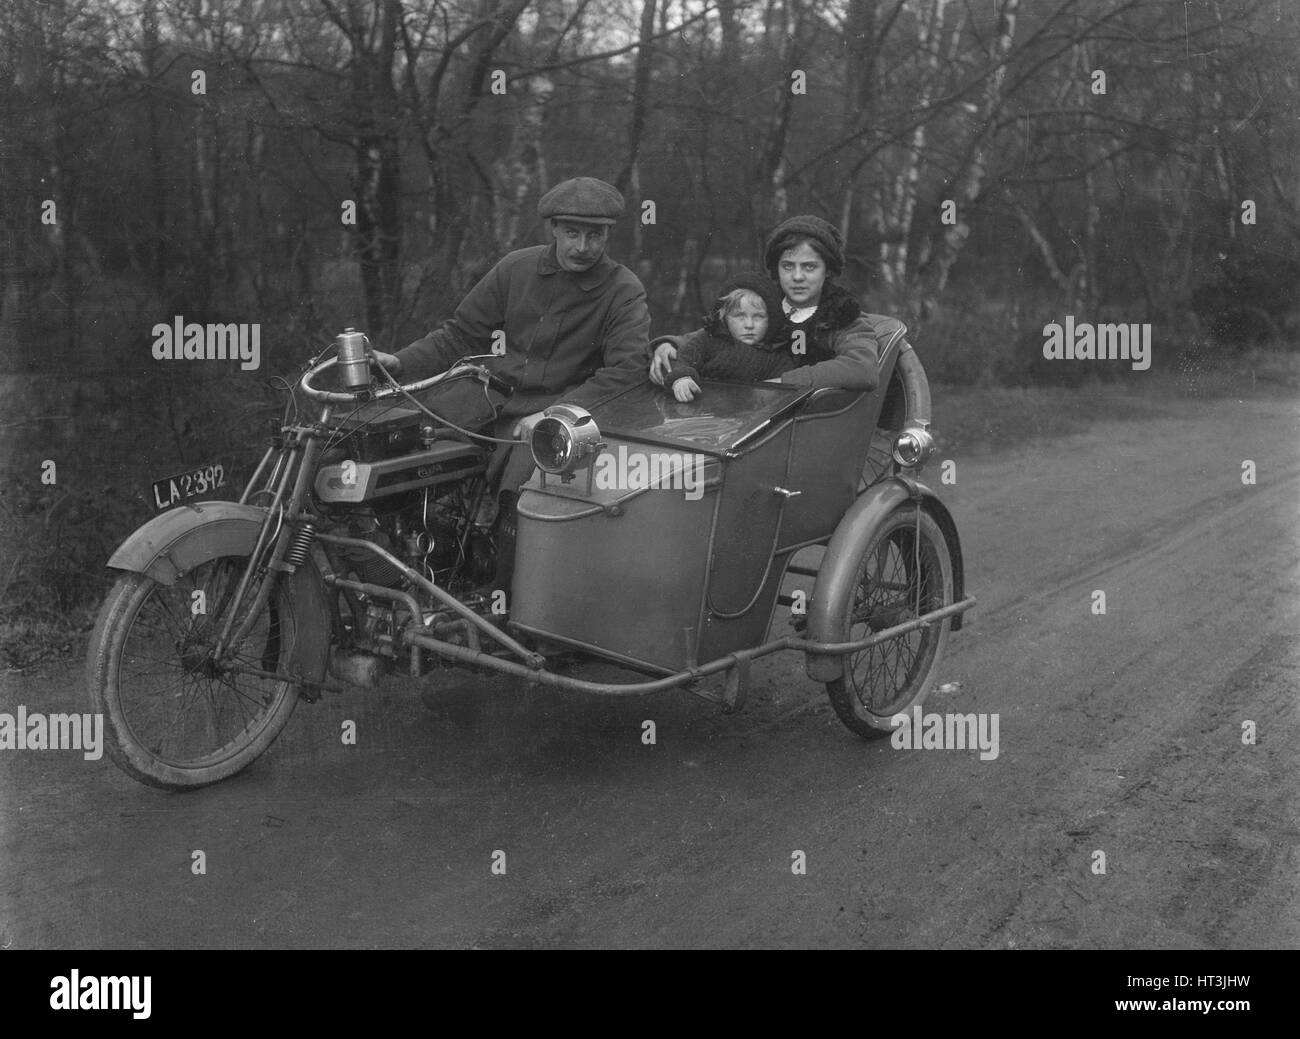 Clyno motorcycle and sidecar Artist: Bill Brunell. - Stock Image